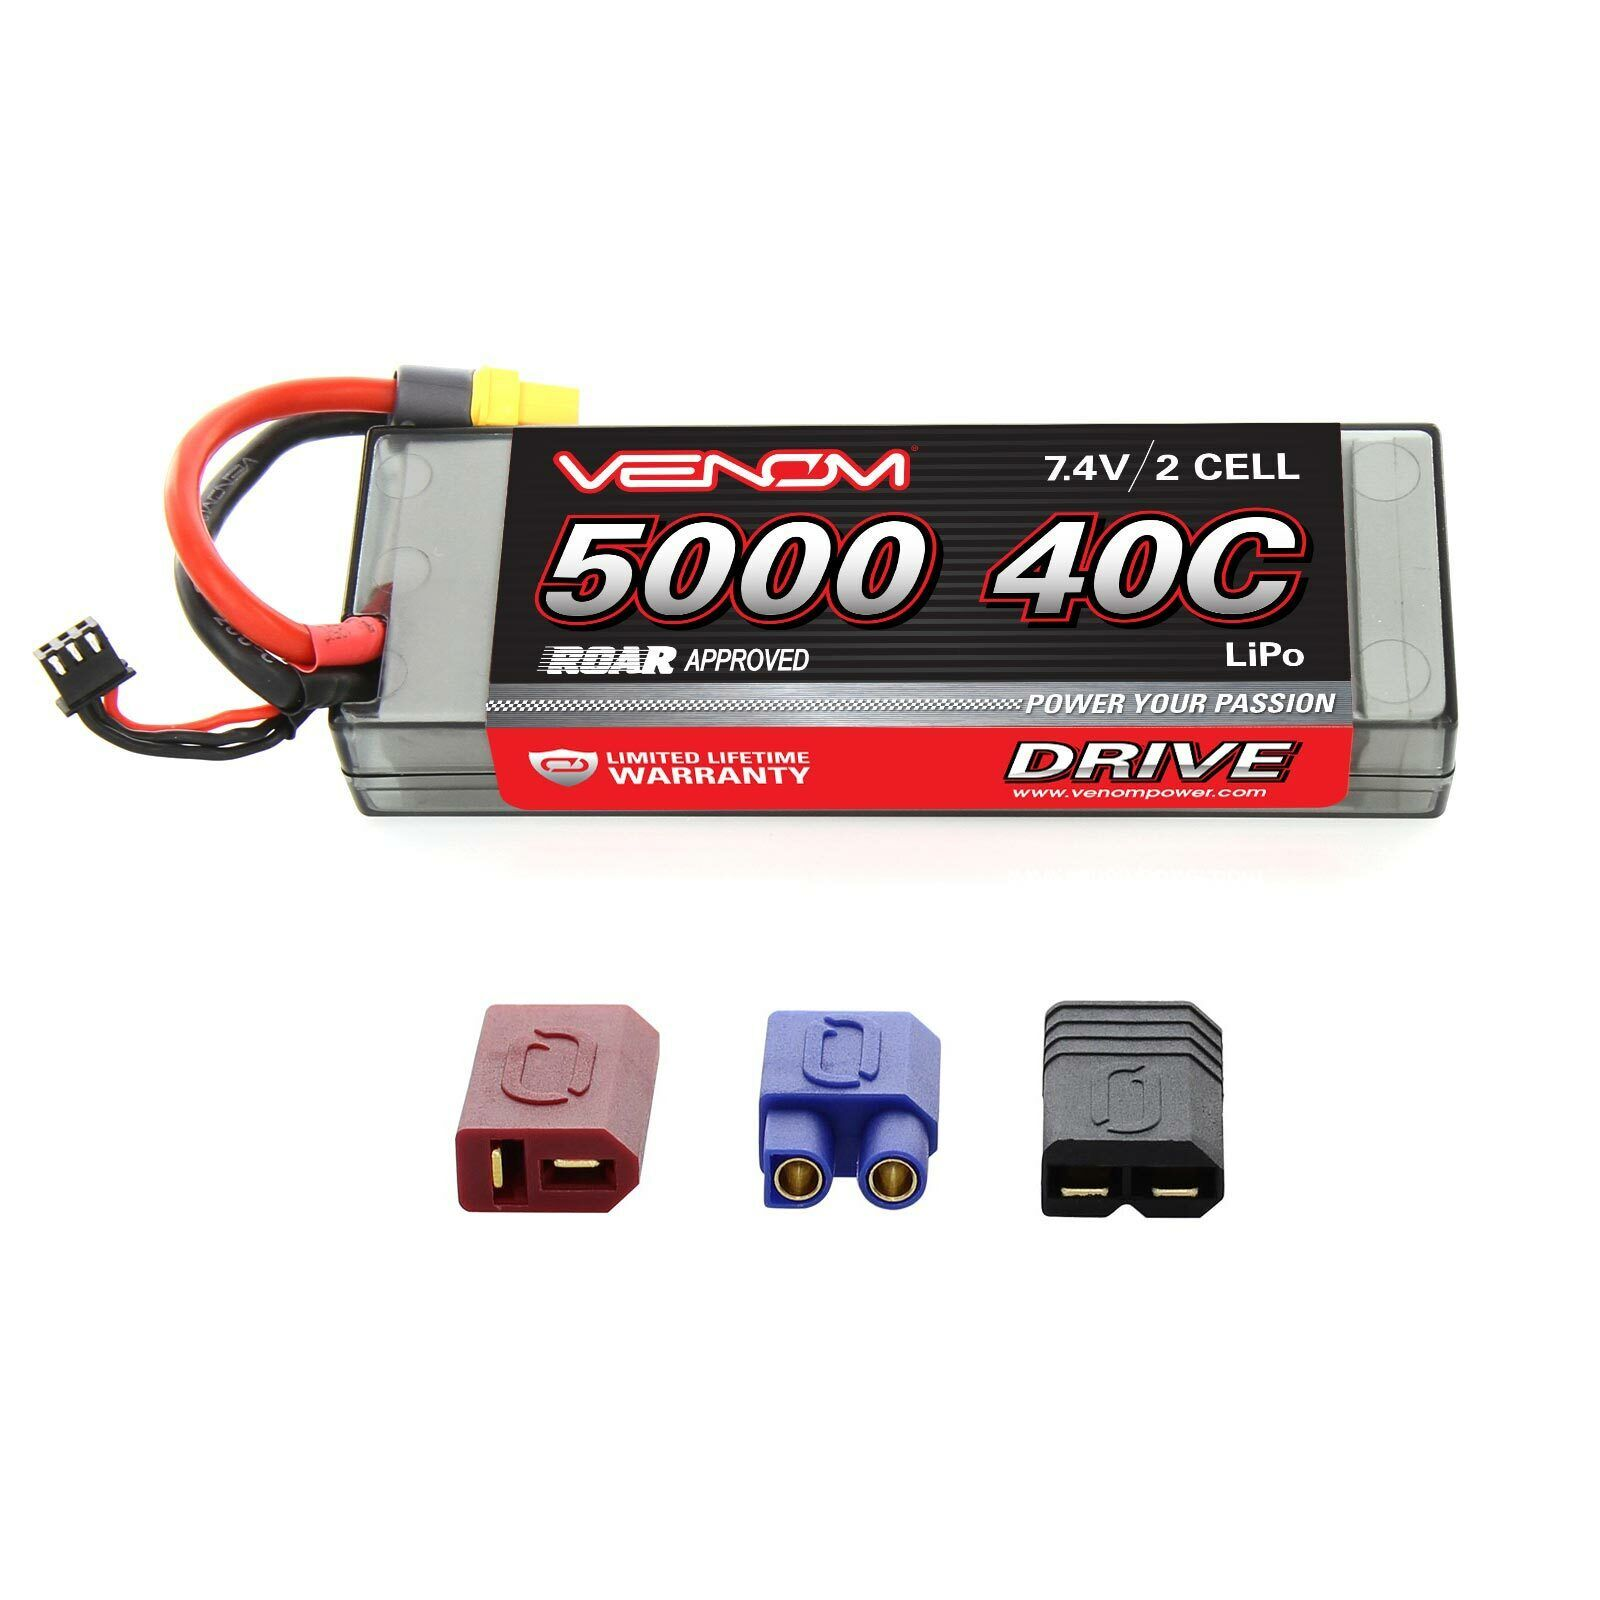 Axial SCX10 Jeep Wrangler Rubicon 40C 7.4V 5000mAh LiPo Battery by Venom